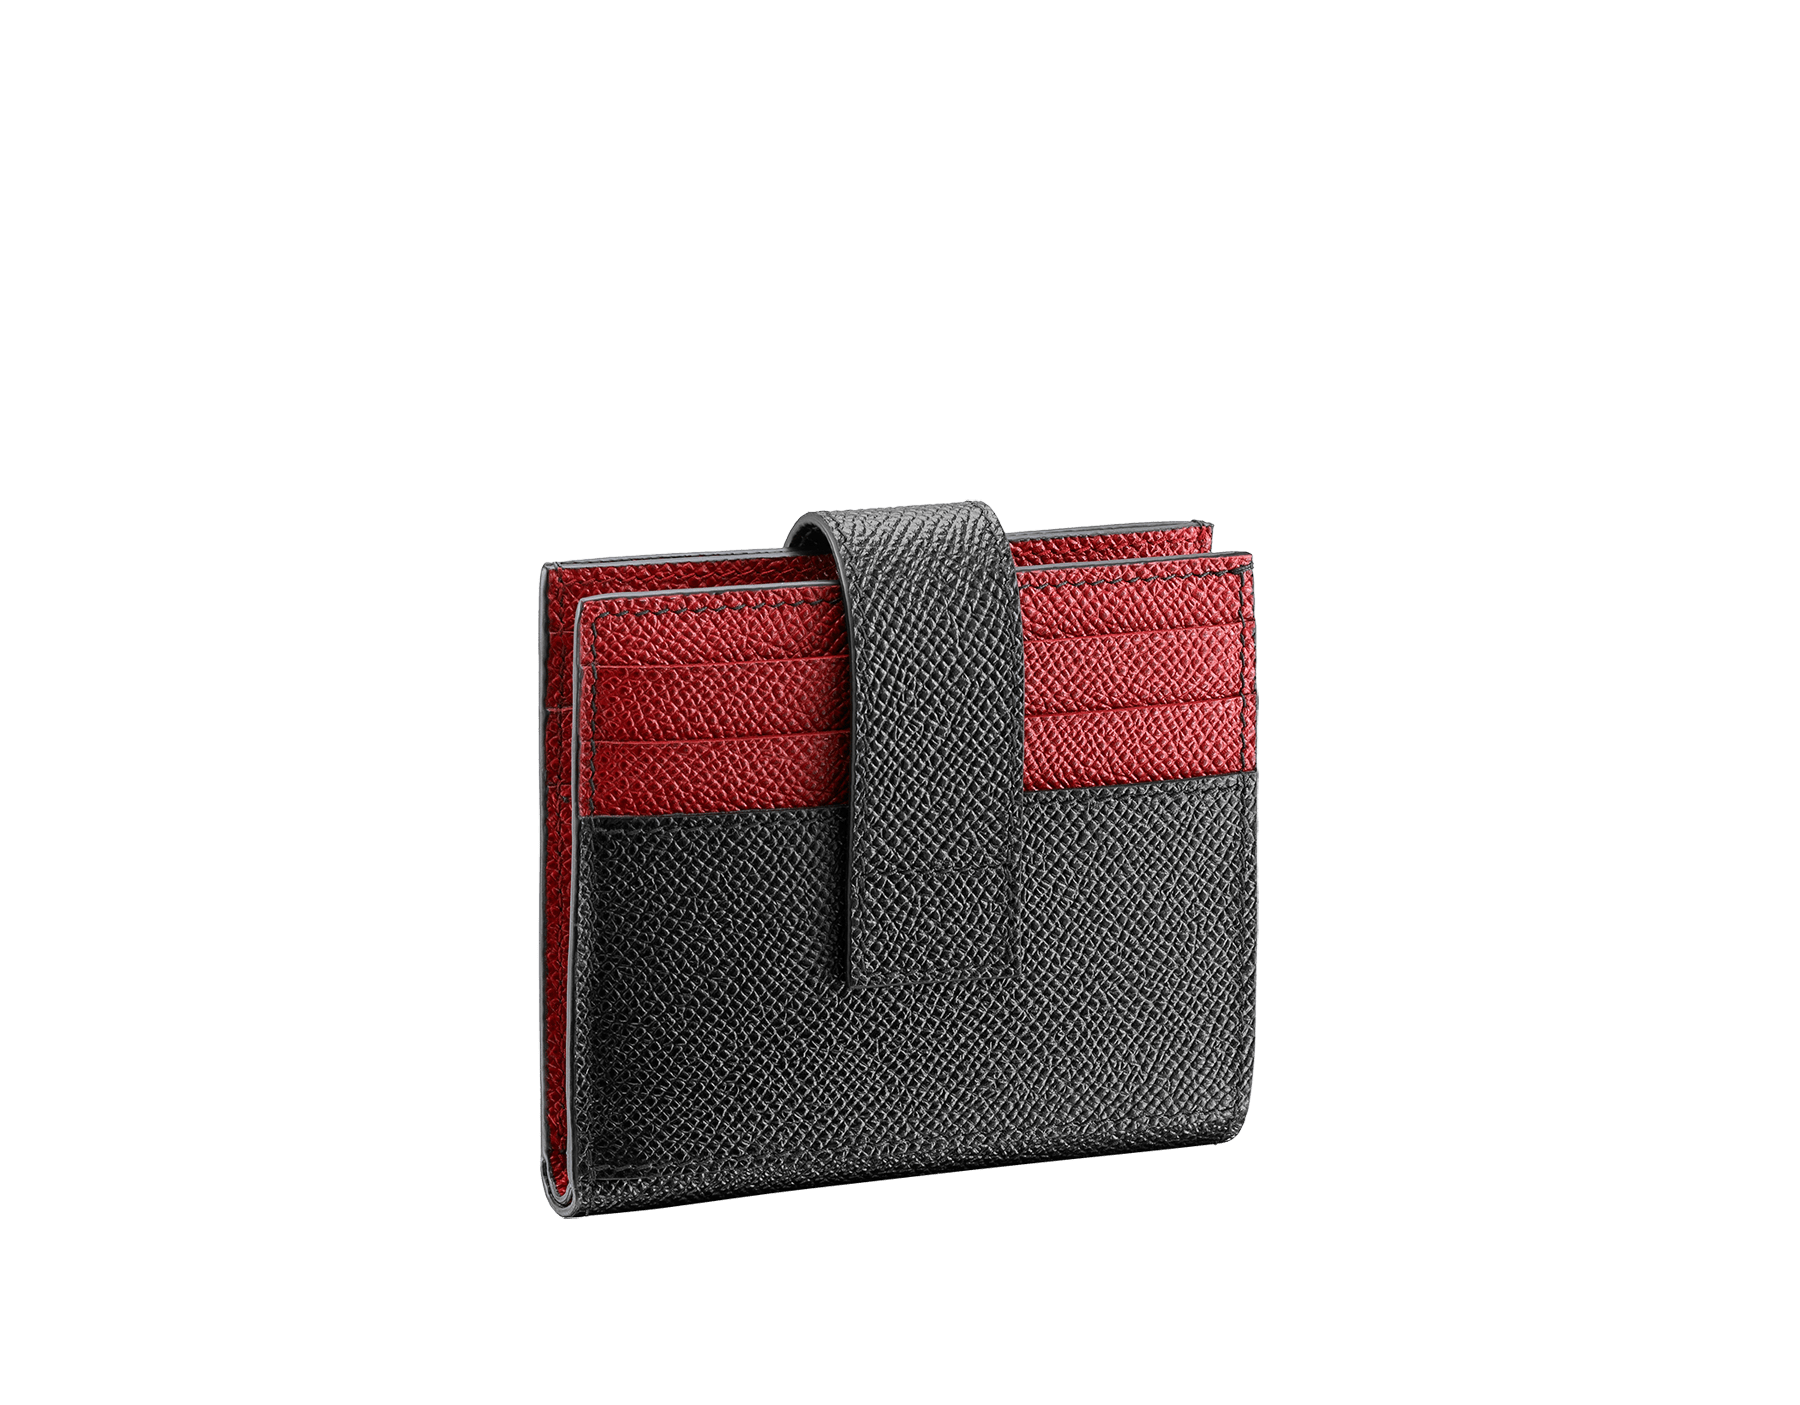 """BVLGARI BVLGARI"" card holder in black and ruby red grain calf leather. Iconic logo decoration in palladium plated brass. 290070 image 3"